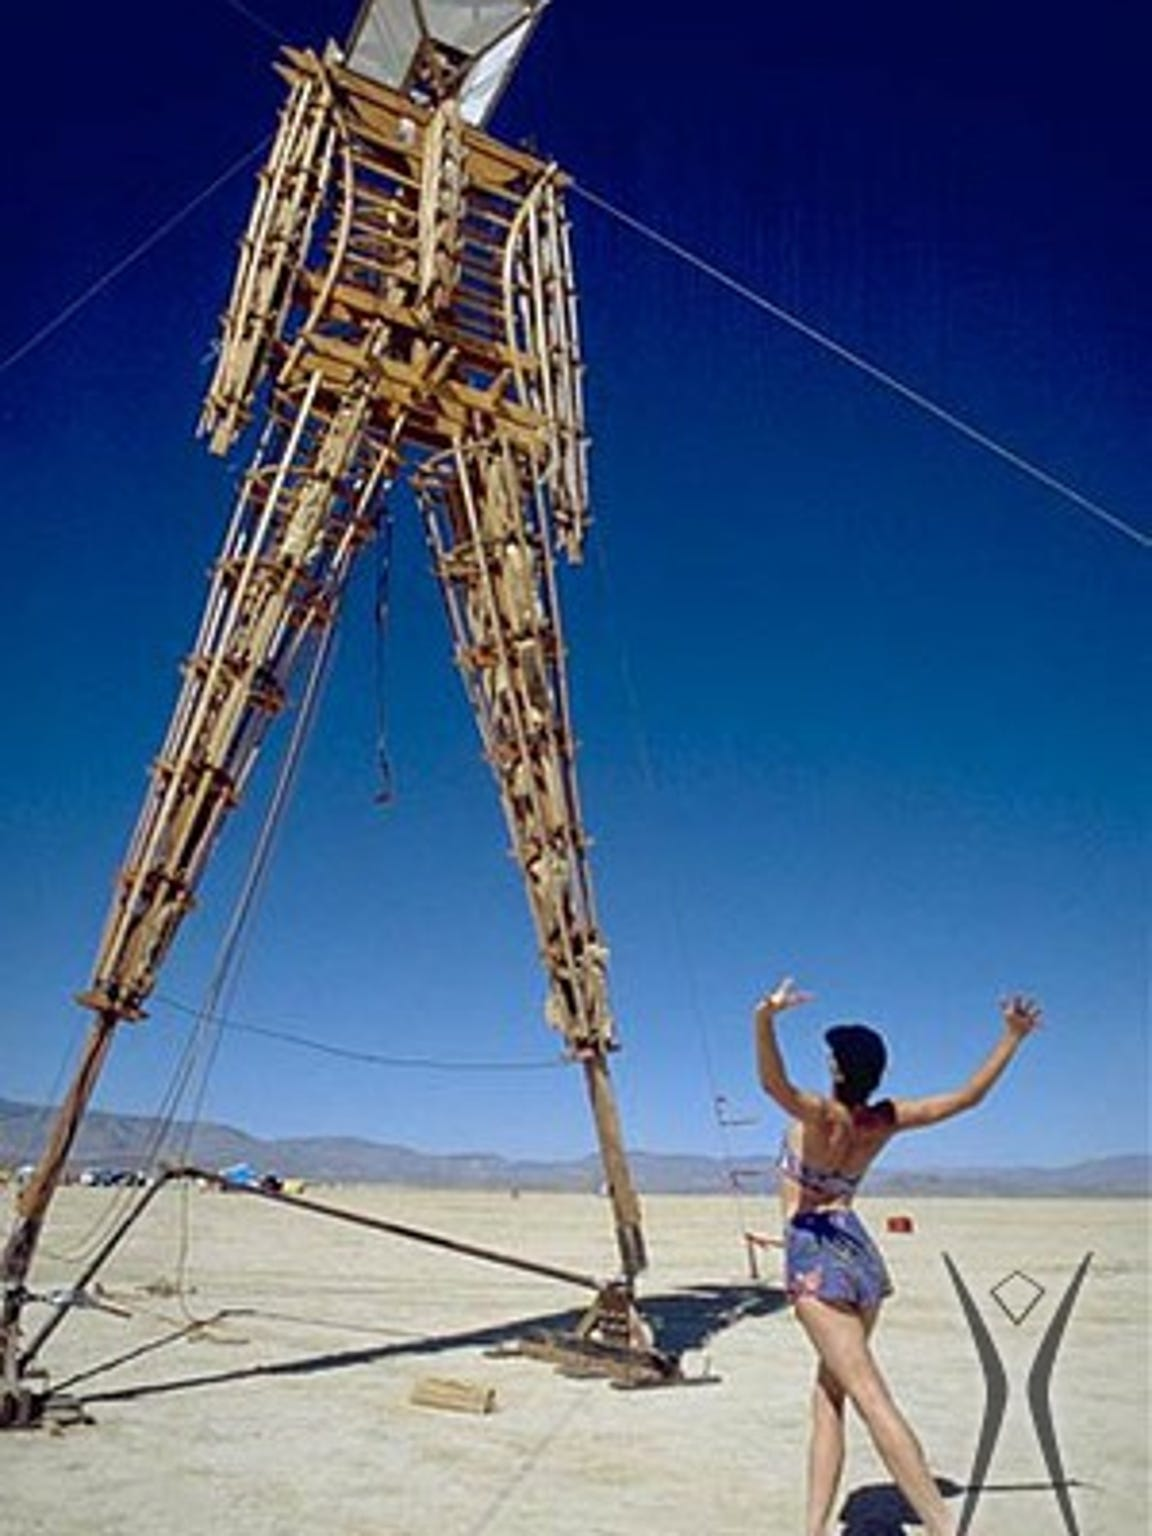 Crimson Rose, one of the Burning Man founders, practices a routine for the man burn in 1991 in the Black Rock Desert.